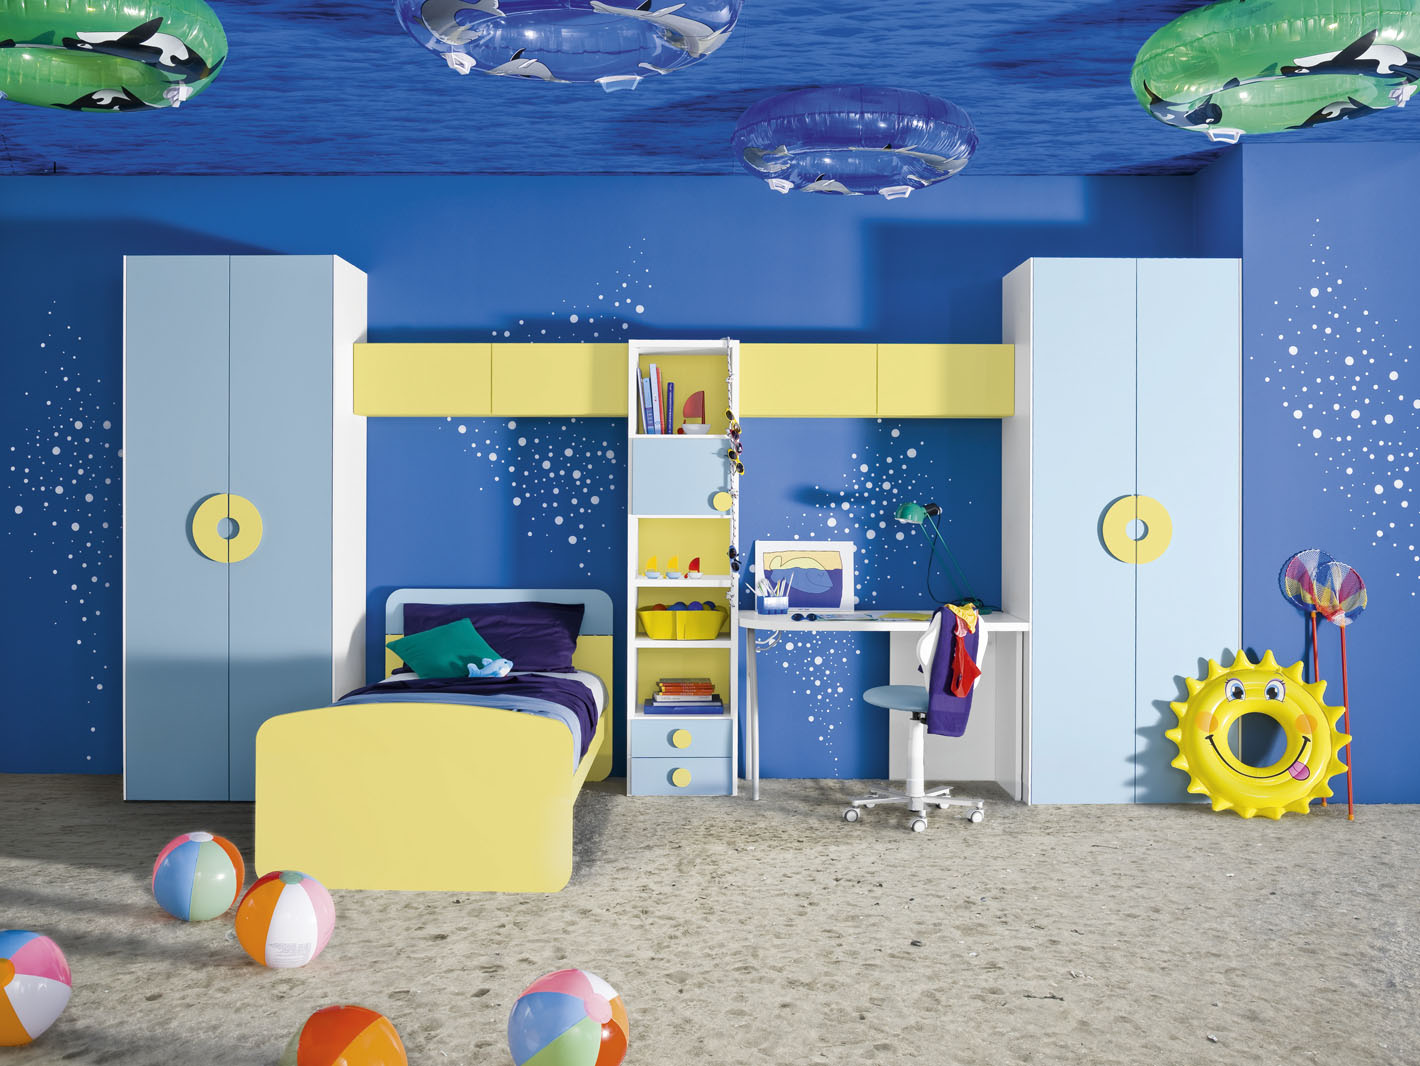 Bedroom designs for boys children - Bedroom Design Ideas Just For Boys